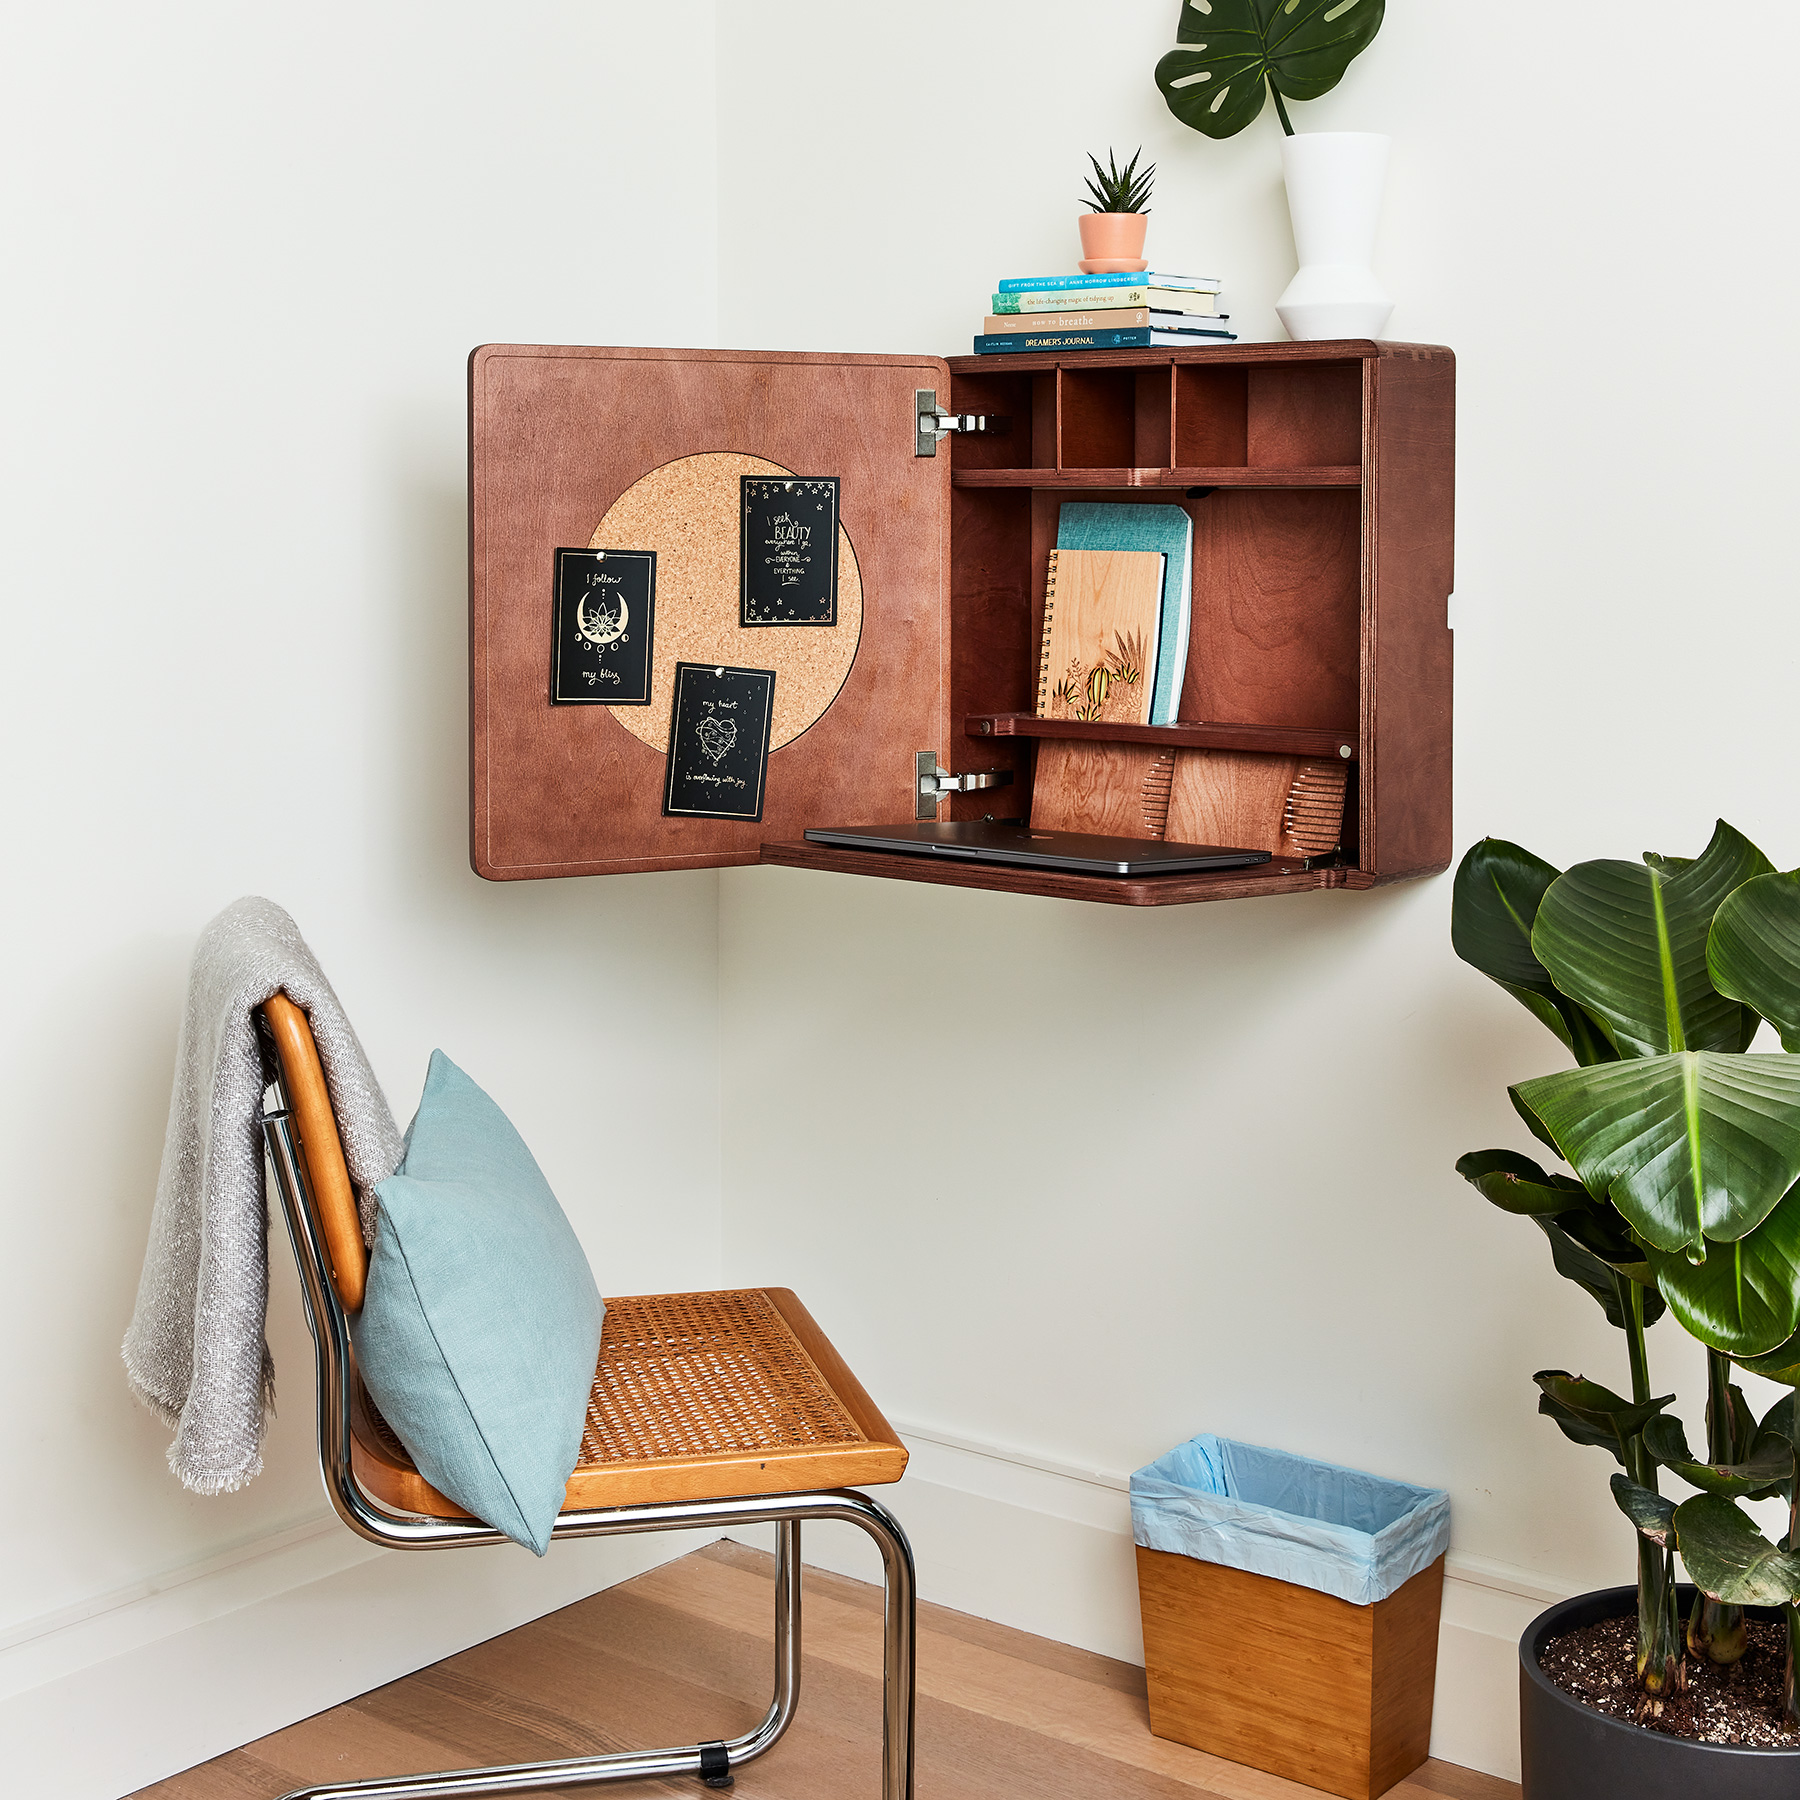 2020 Real Simple Home Tour: Office Desk